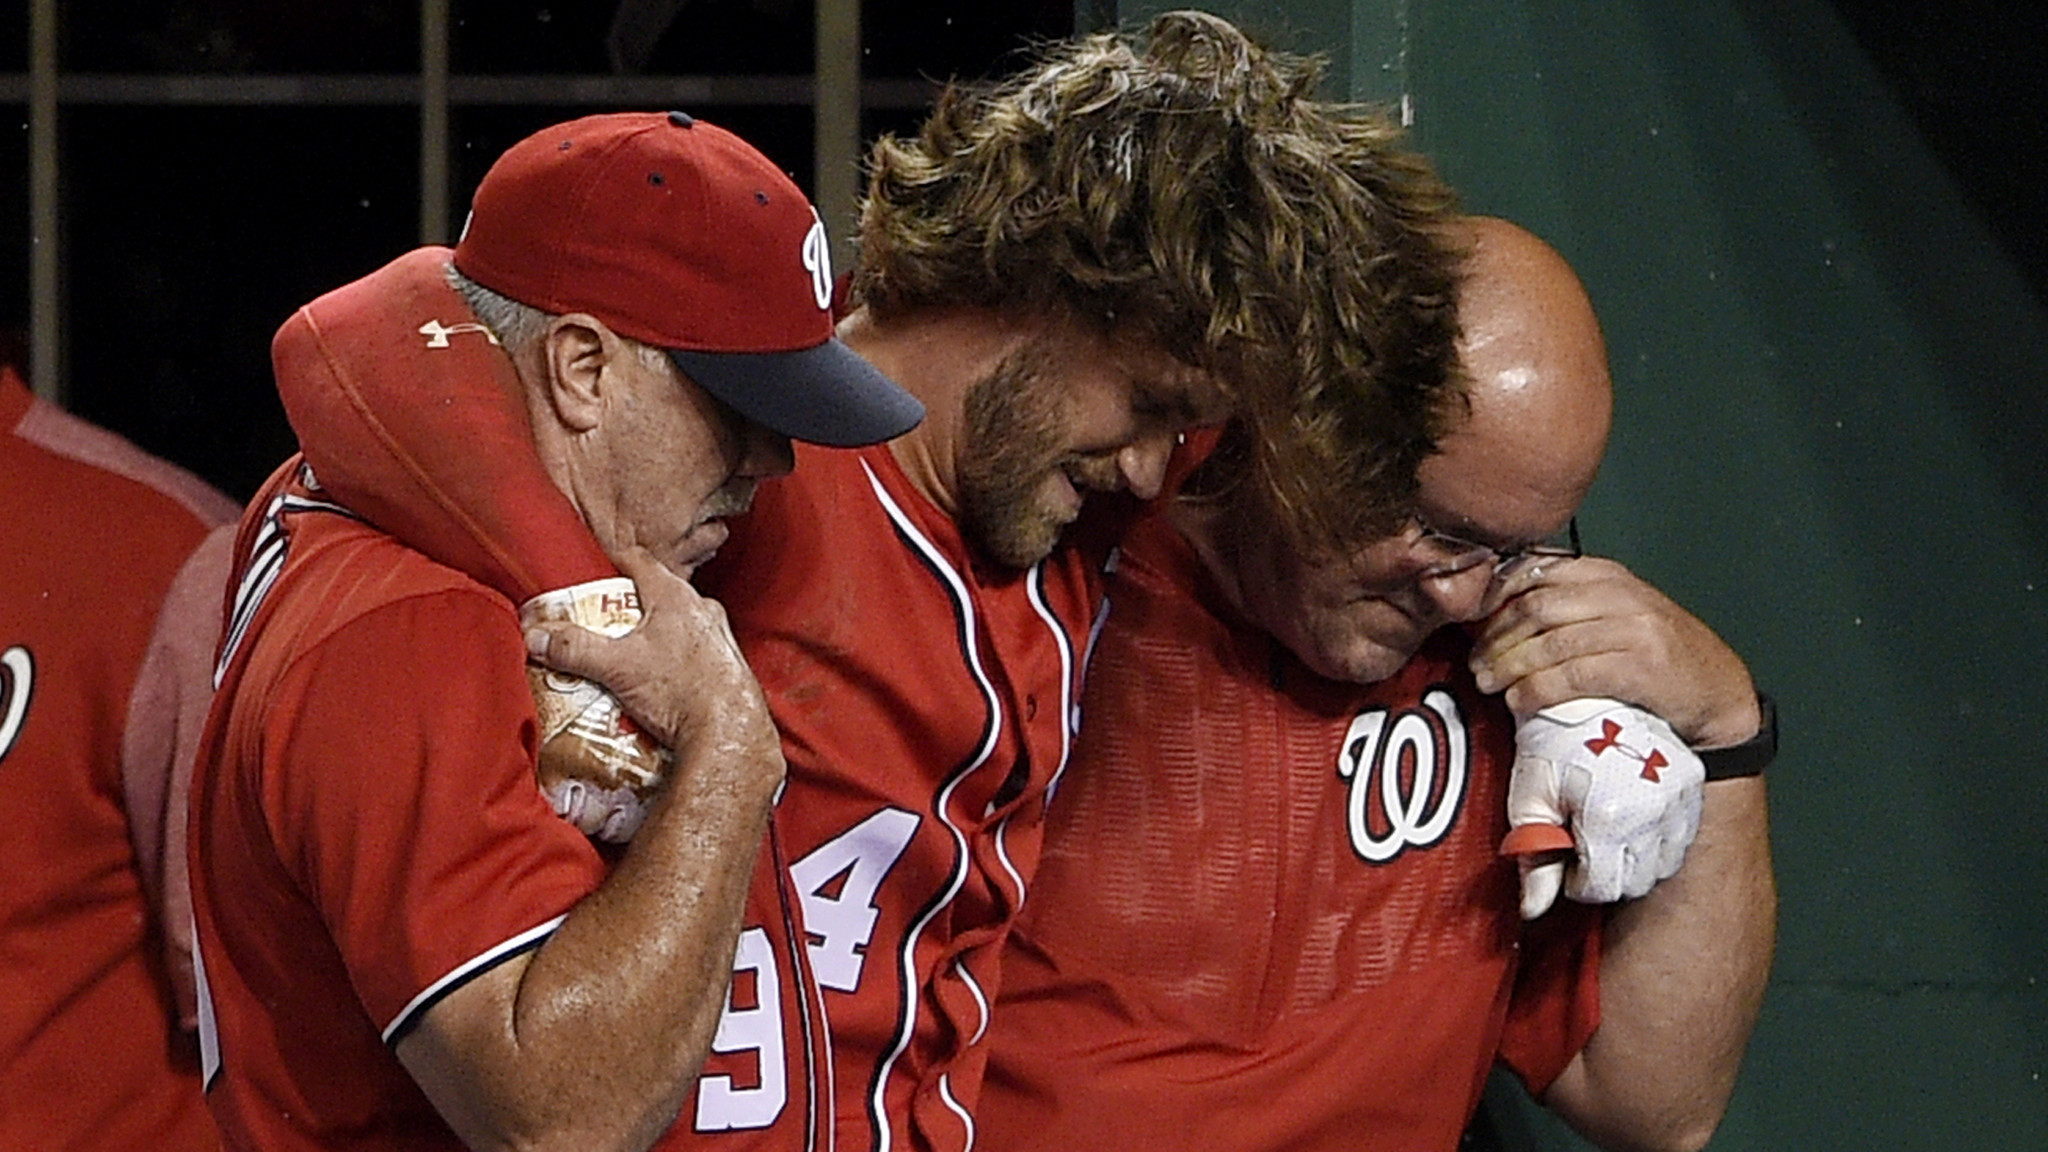 MLB notes: Nationals slugger Bryce Harper leaves game with apparent leg injury